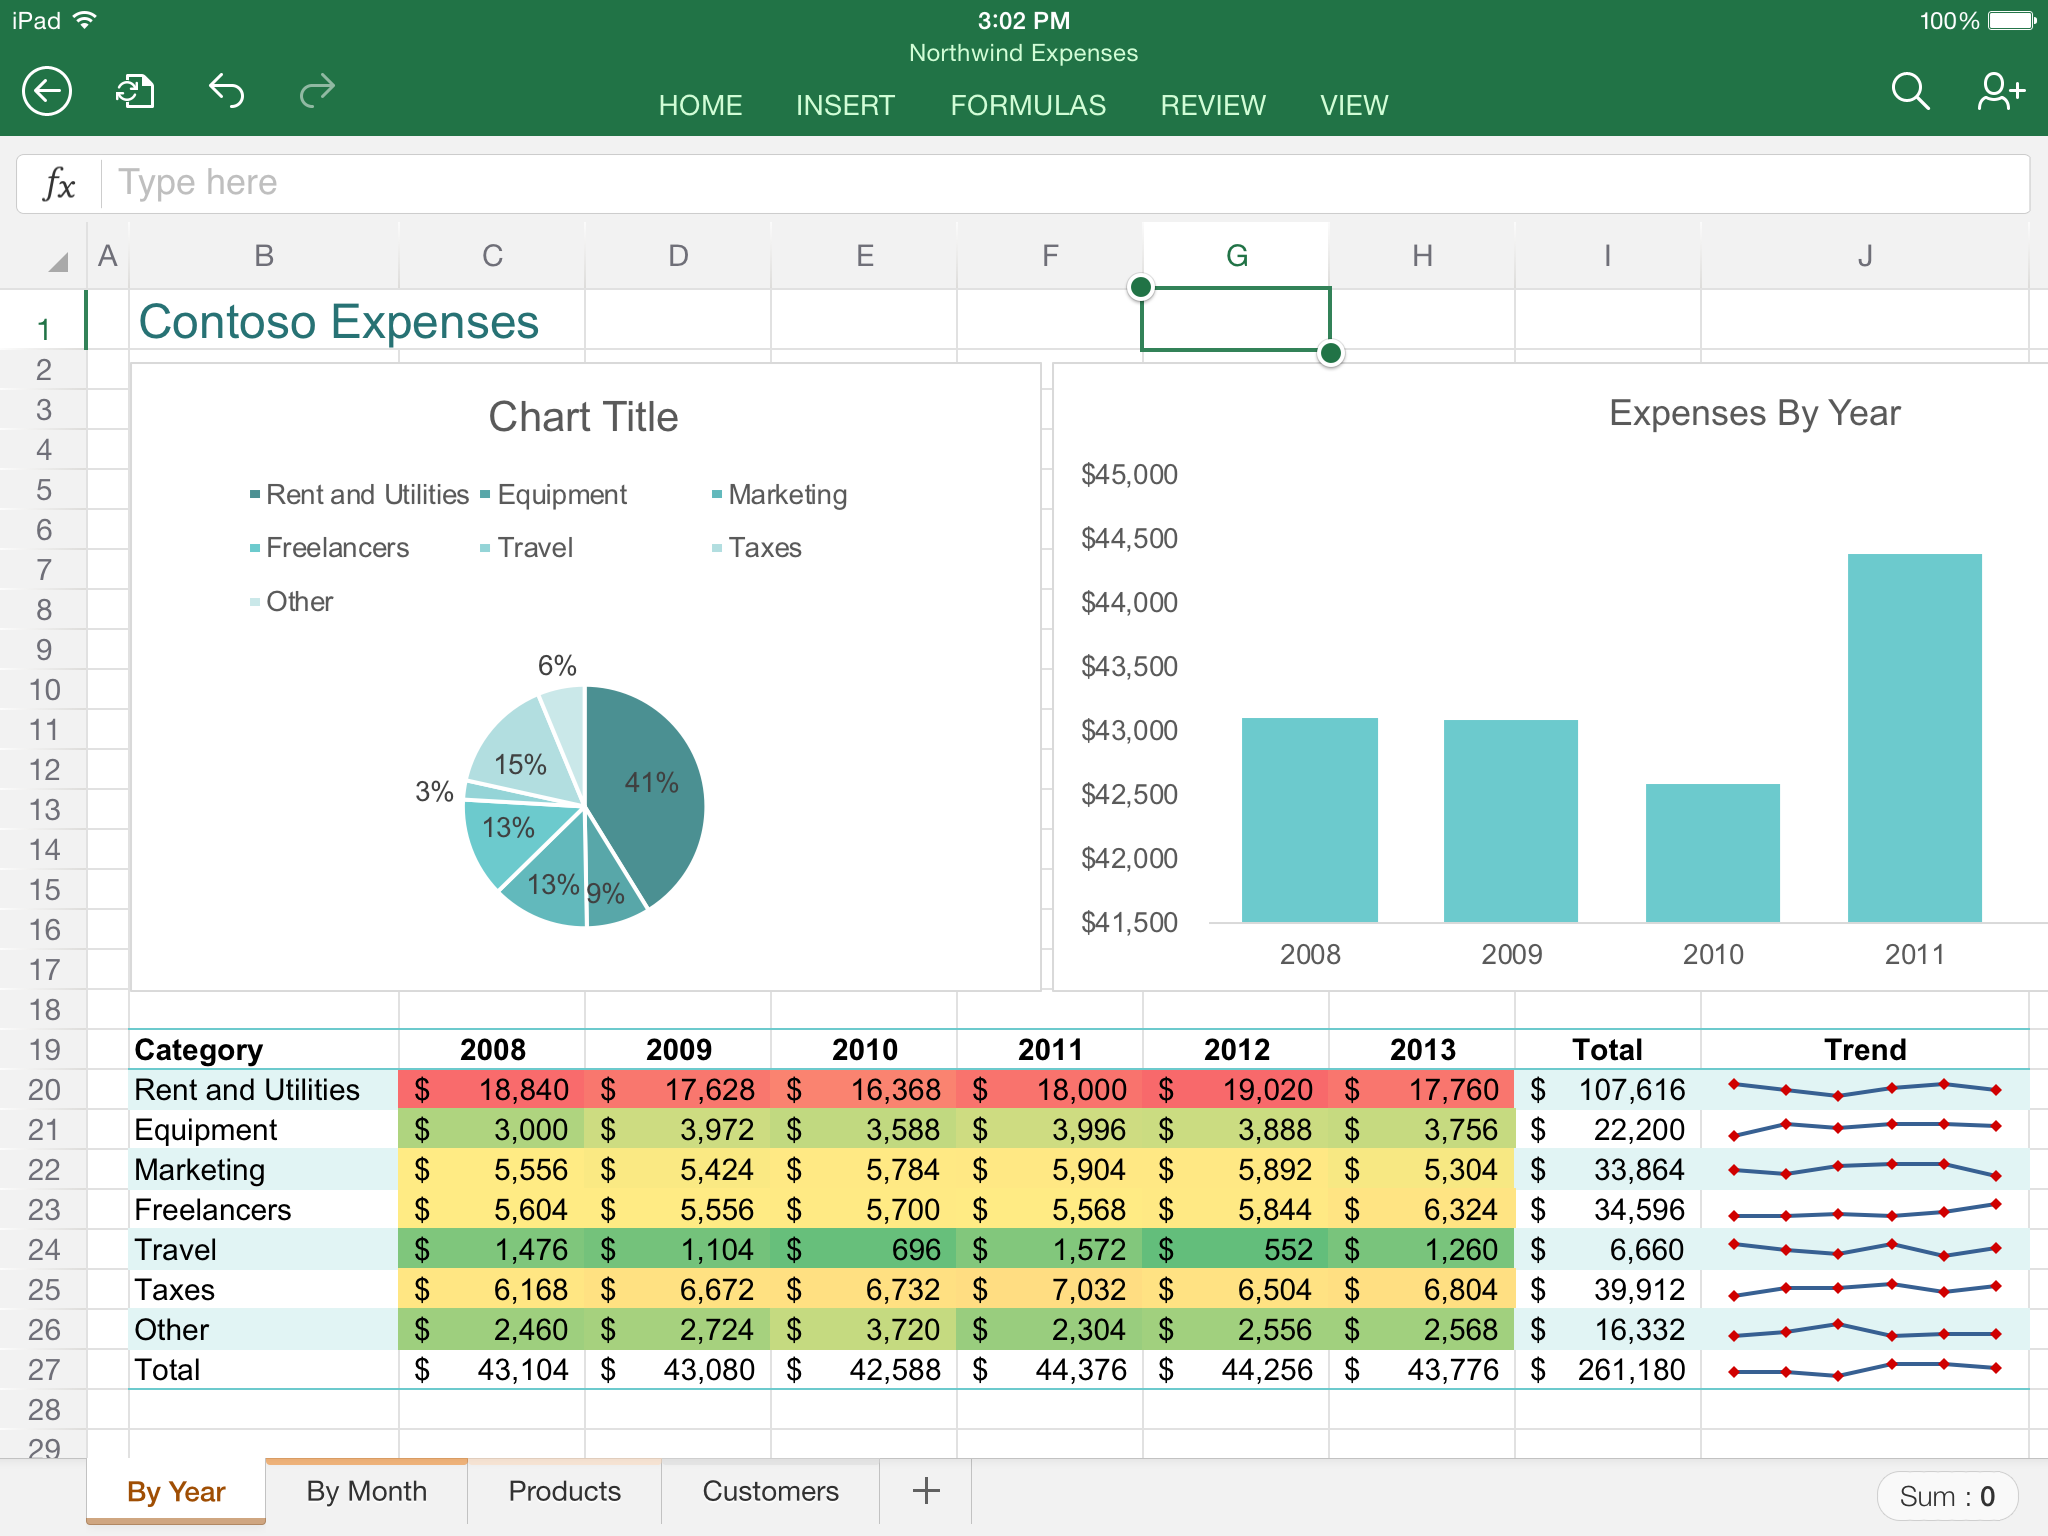 Ediblewildsus  Nice App Highlight Excel  Mobile Digital Now With Interesting Excel In Action With Charming How To Compare  Excel Spreadsheets Also What Is The Best Way To Learn Excel In Addition How Does Excel Solver Work And Dcount In Excel As Well As Recover File Excel Additionally Free Excel Testing From Youstonybrookedu With Ediblewildsus  Interesting App Highlight Excel  Mobile Digital Now With Charming Excel In Action And Nice How To Compare  Excel Spreadsheets Also What Is The Best Way To Learn Excel In Addition How Does Excel Solver Work From Youstonybrookedu